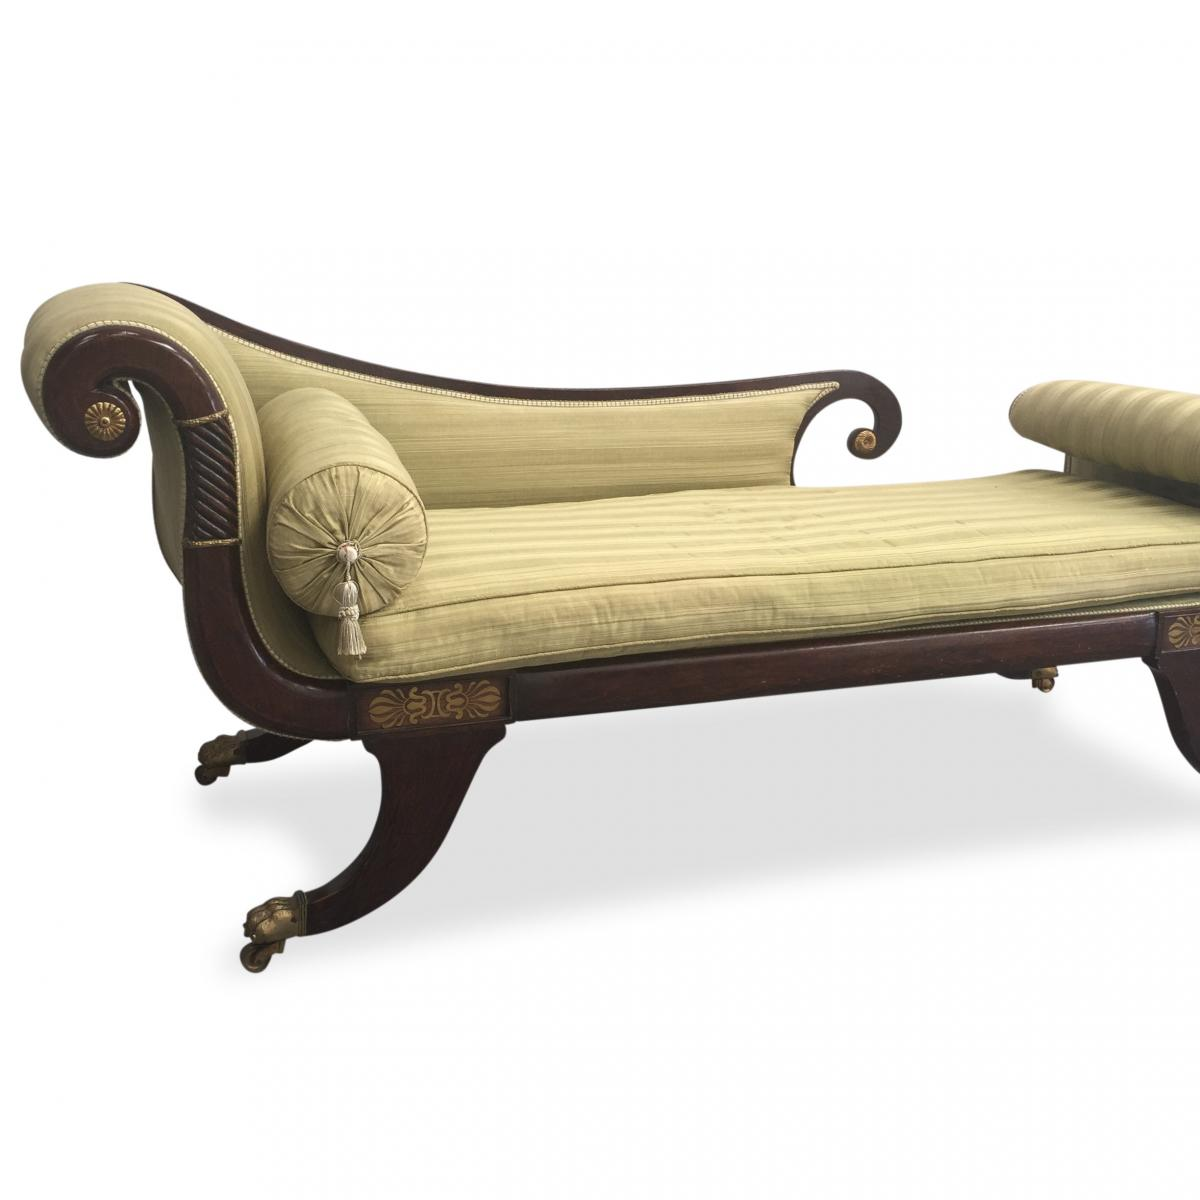 Regency Mahogany and gilt Chaise Longue